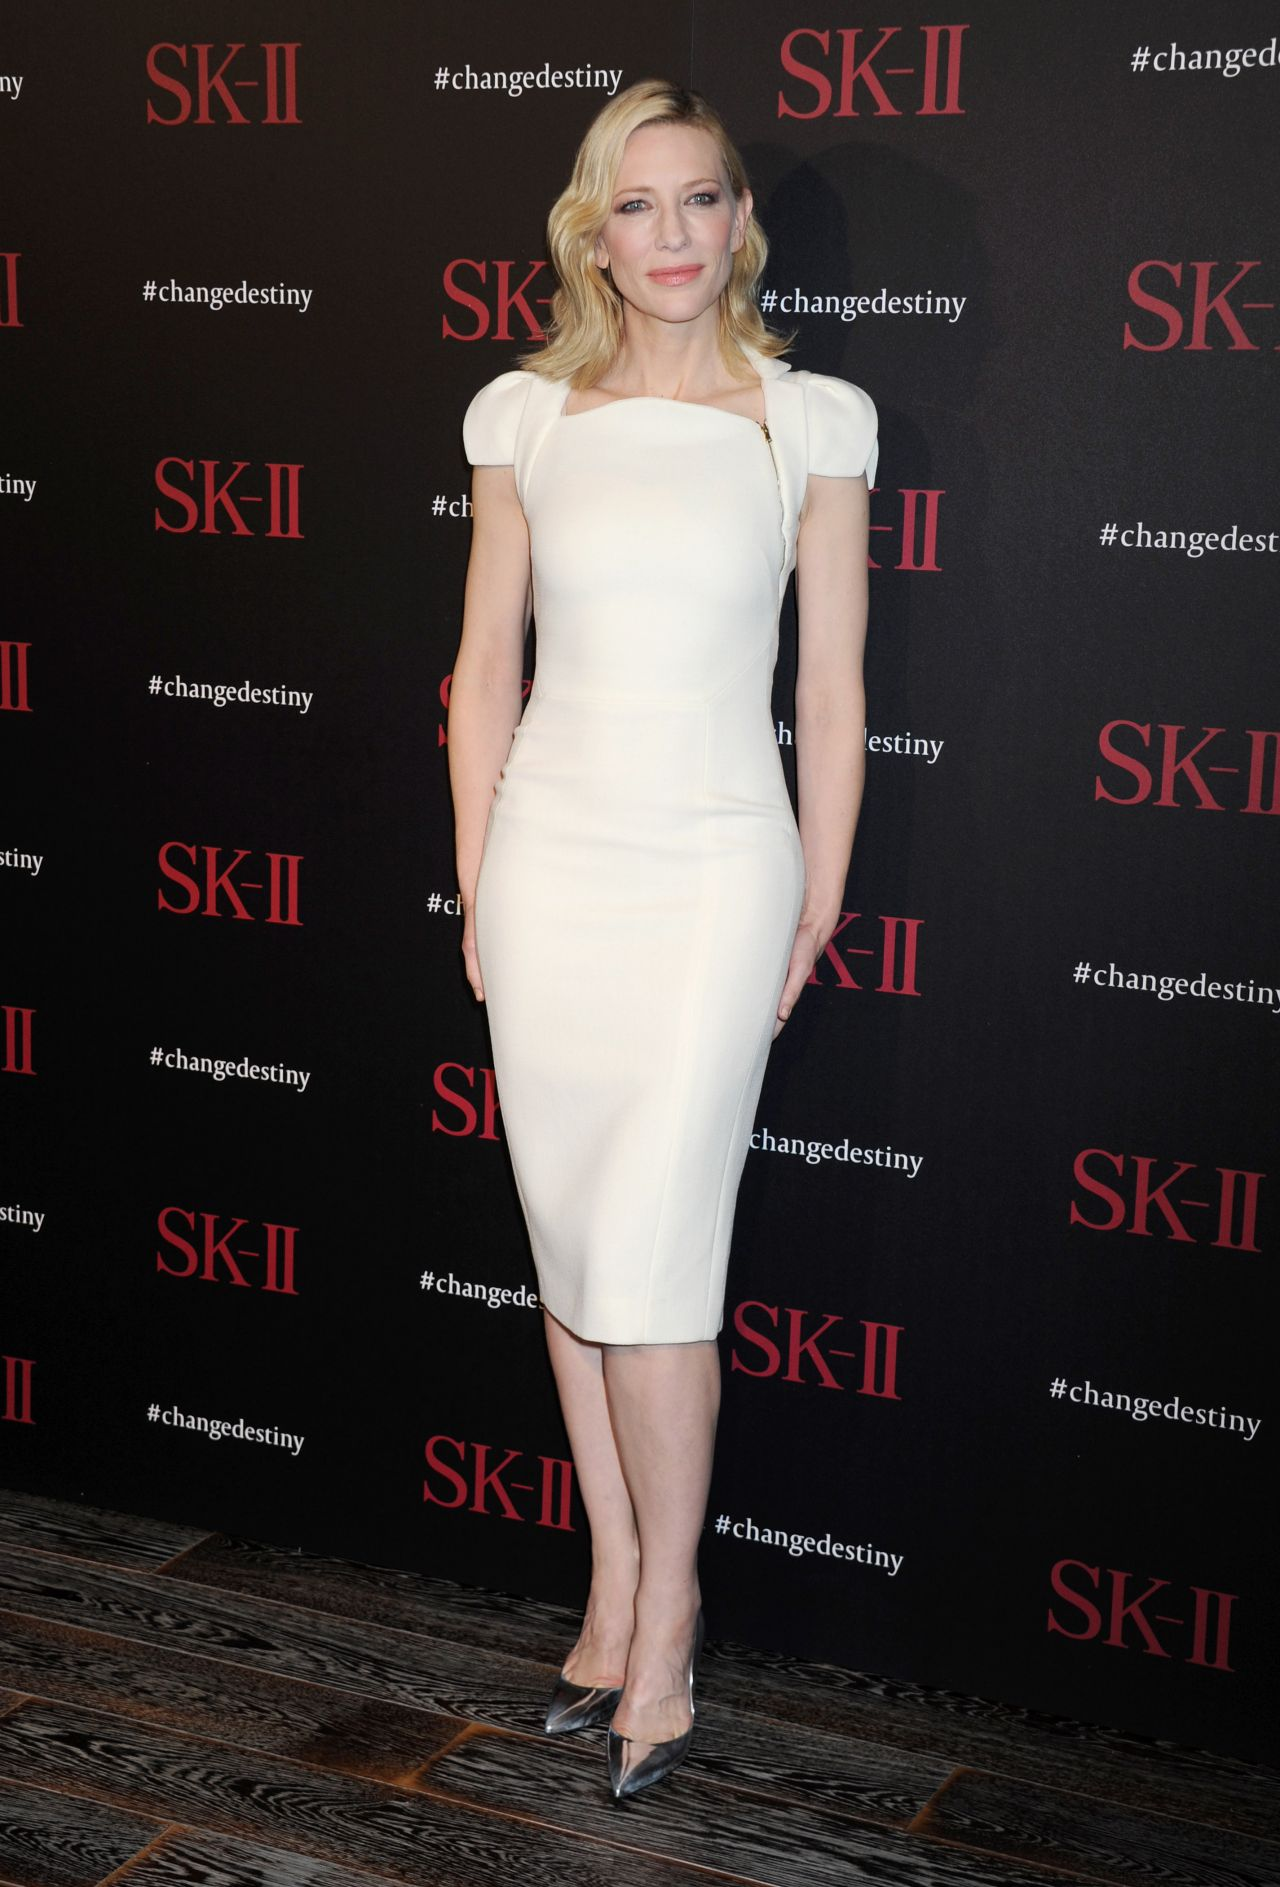 cate-blanchett-sk-ii-changedestiny-forum-in-los-angeles-2-26-2016-10